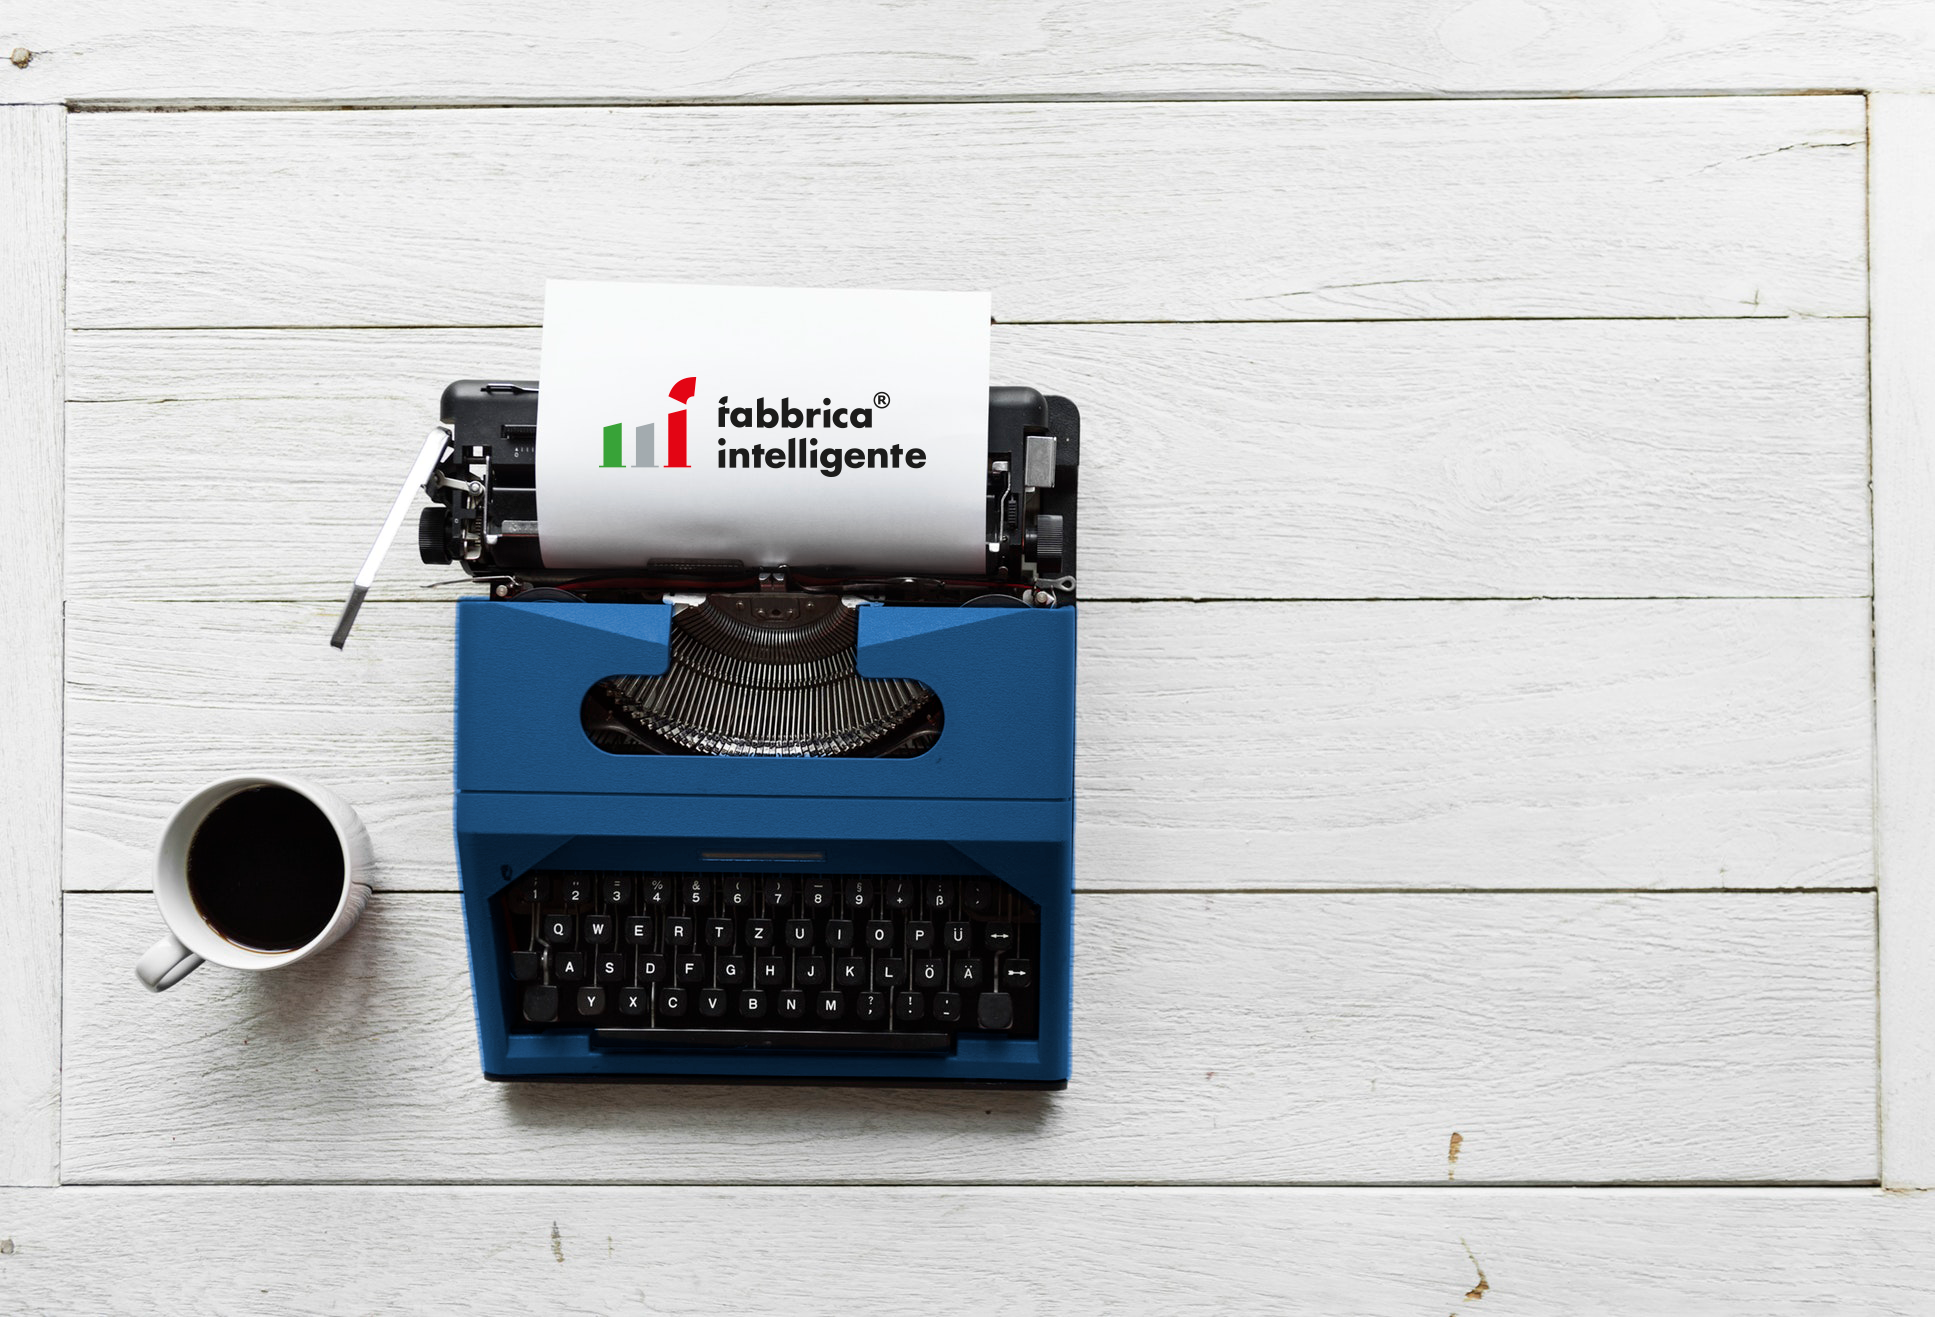 EDITORIALE NEWSLETTER n°1/2019: il Cluster Fabbrica Intelligente rilancia!